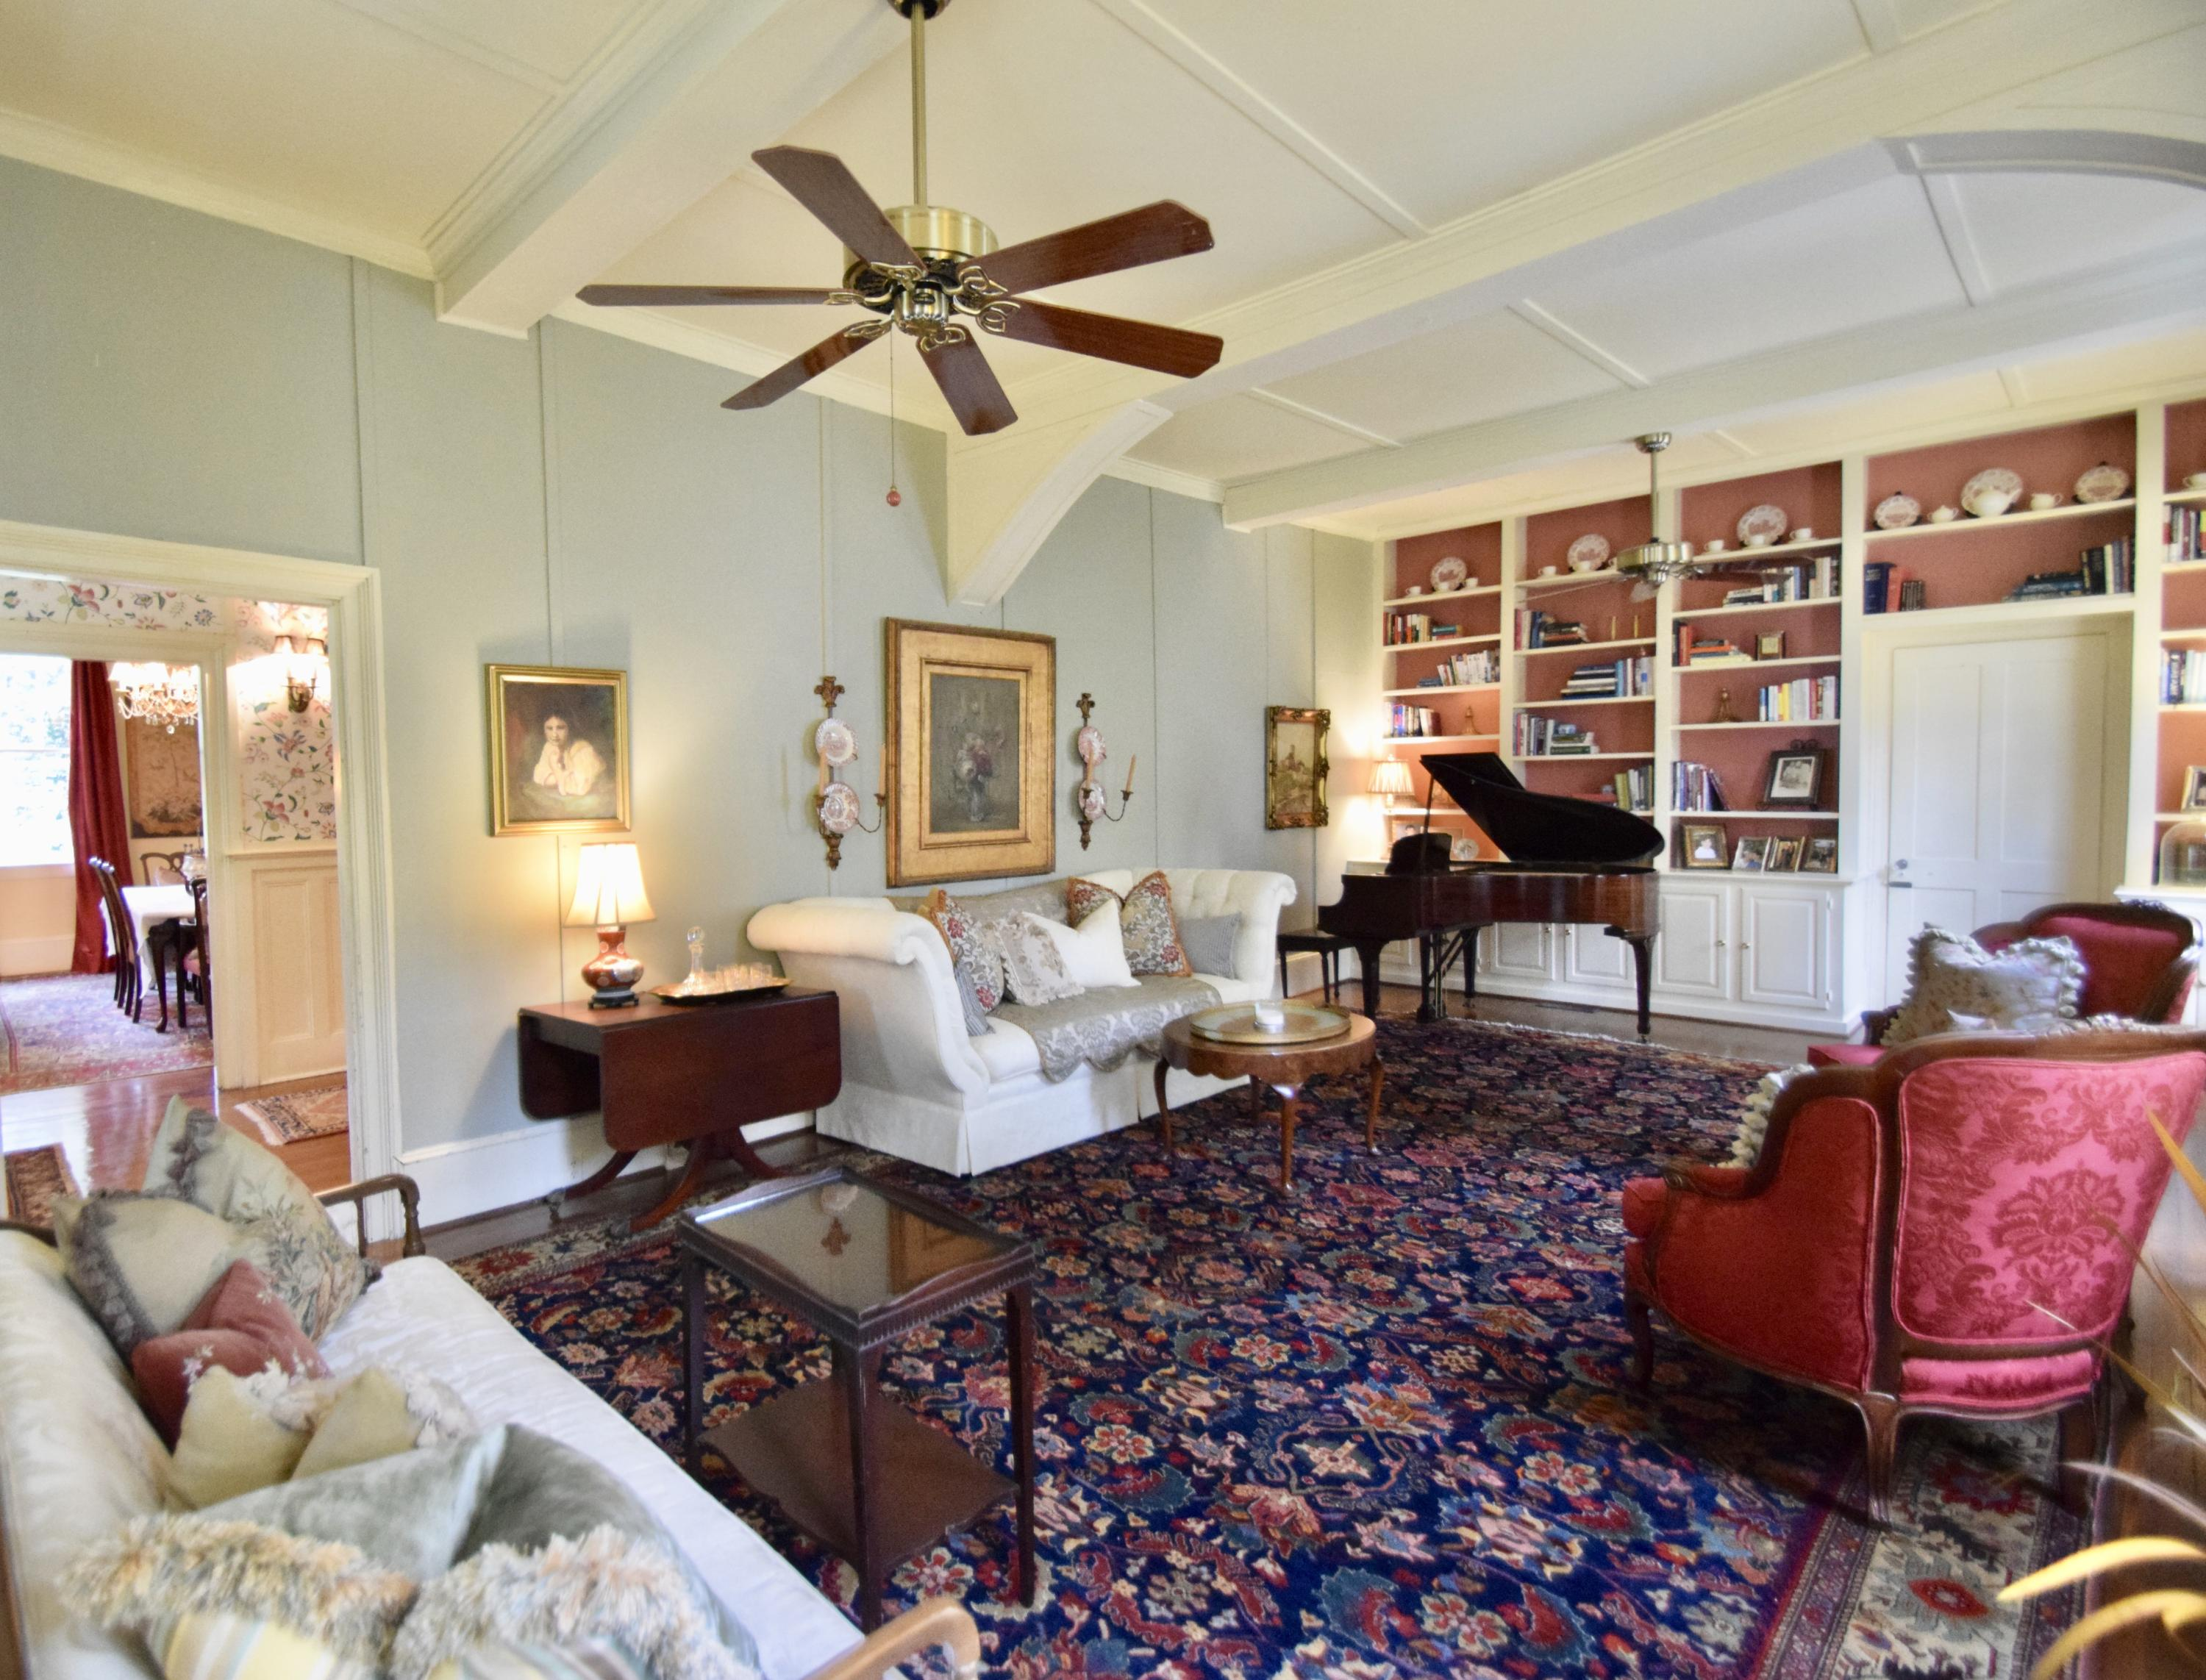 Historic District Homes For Sale - 115 Briarwood, Summerville, SC - 27